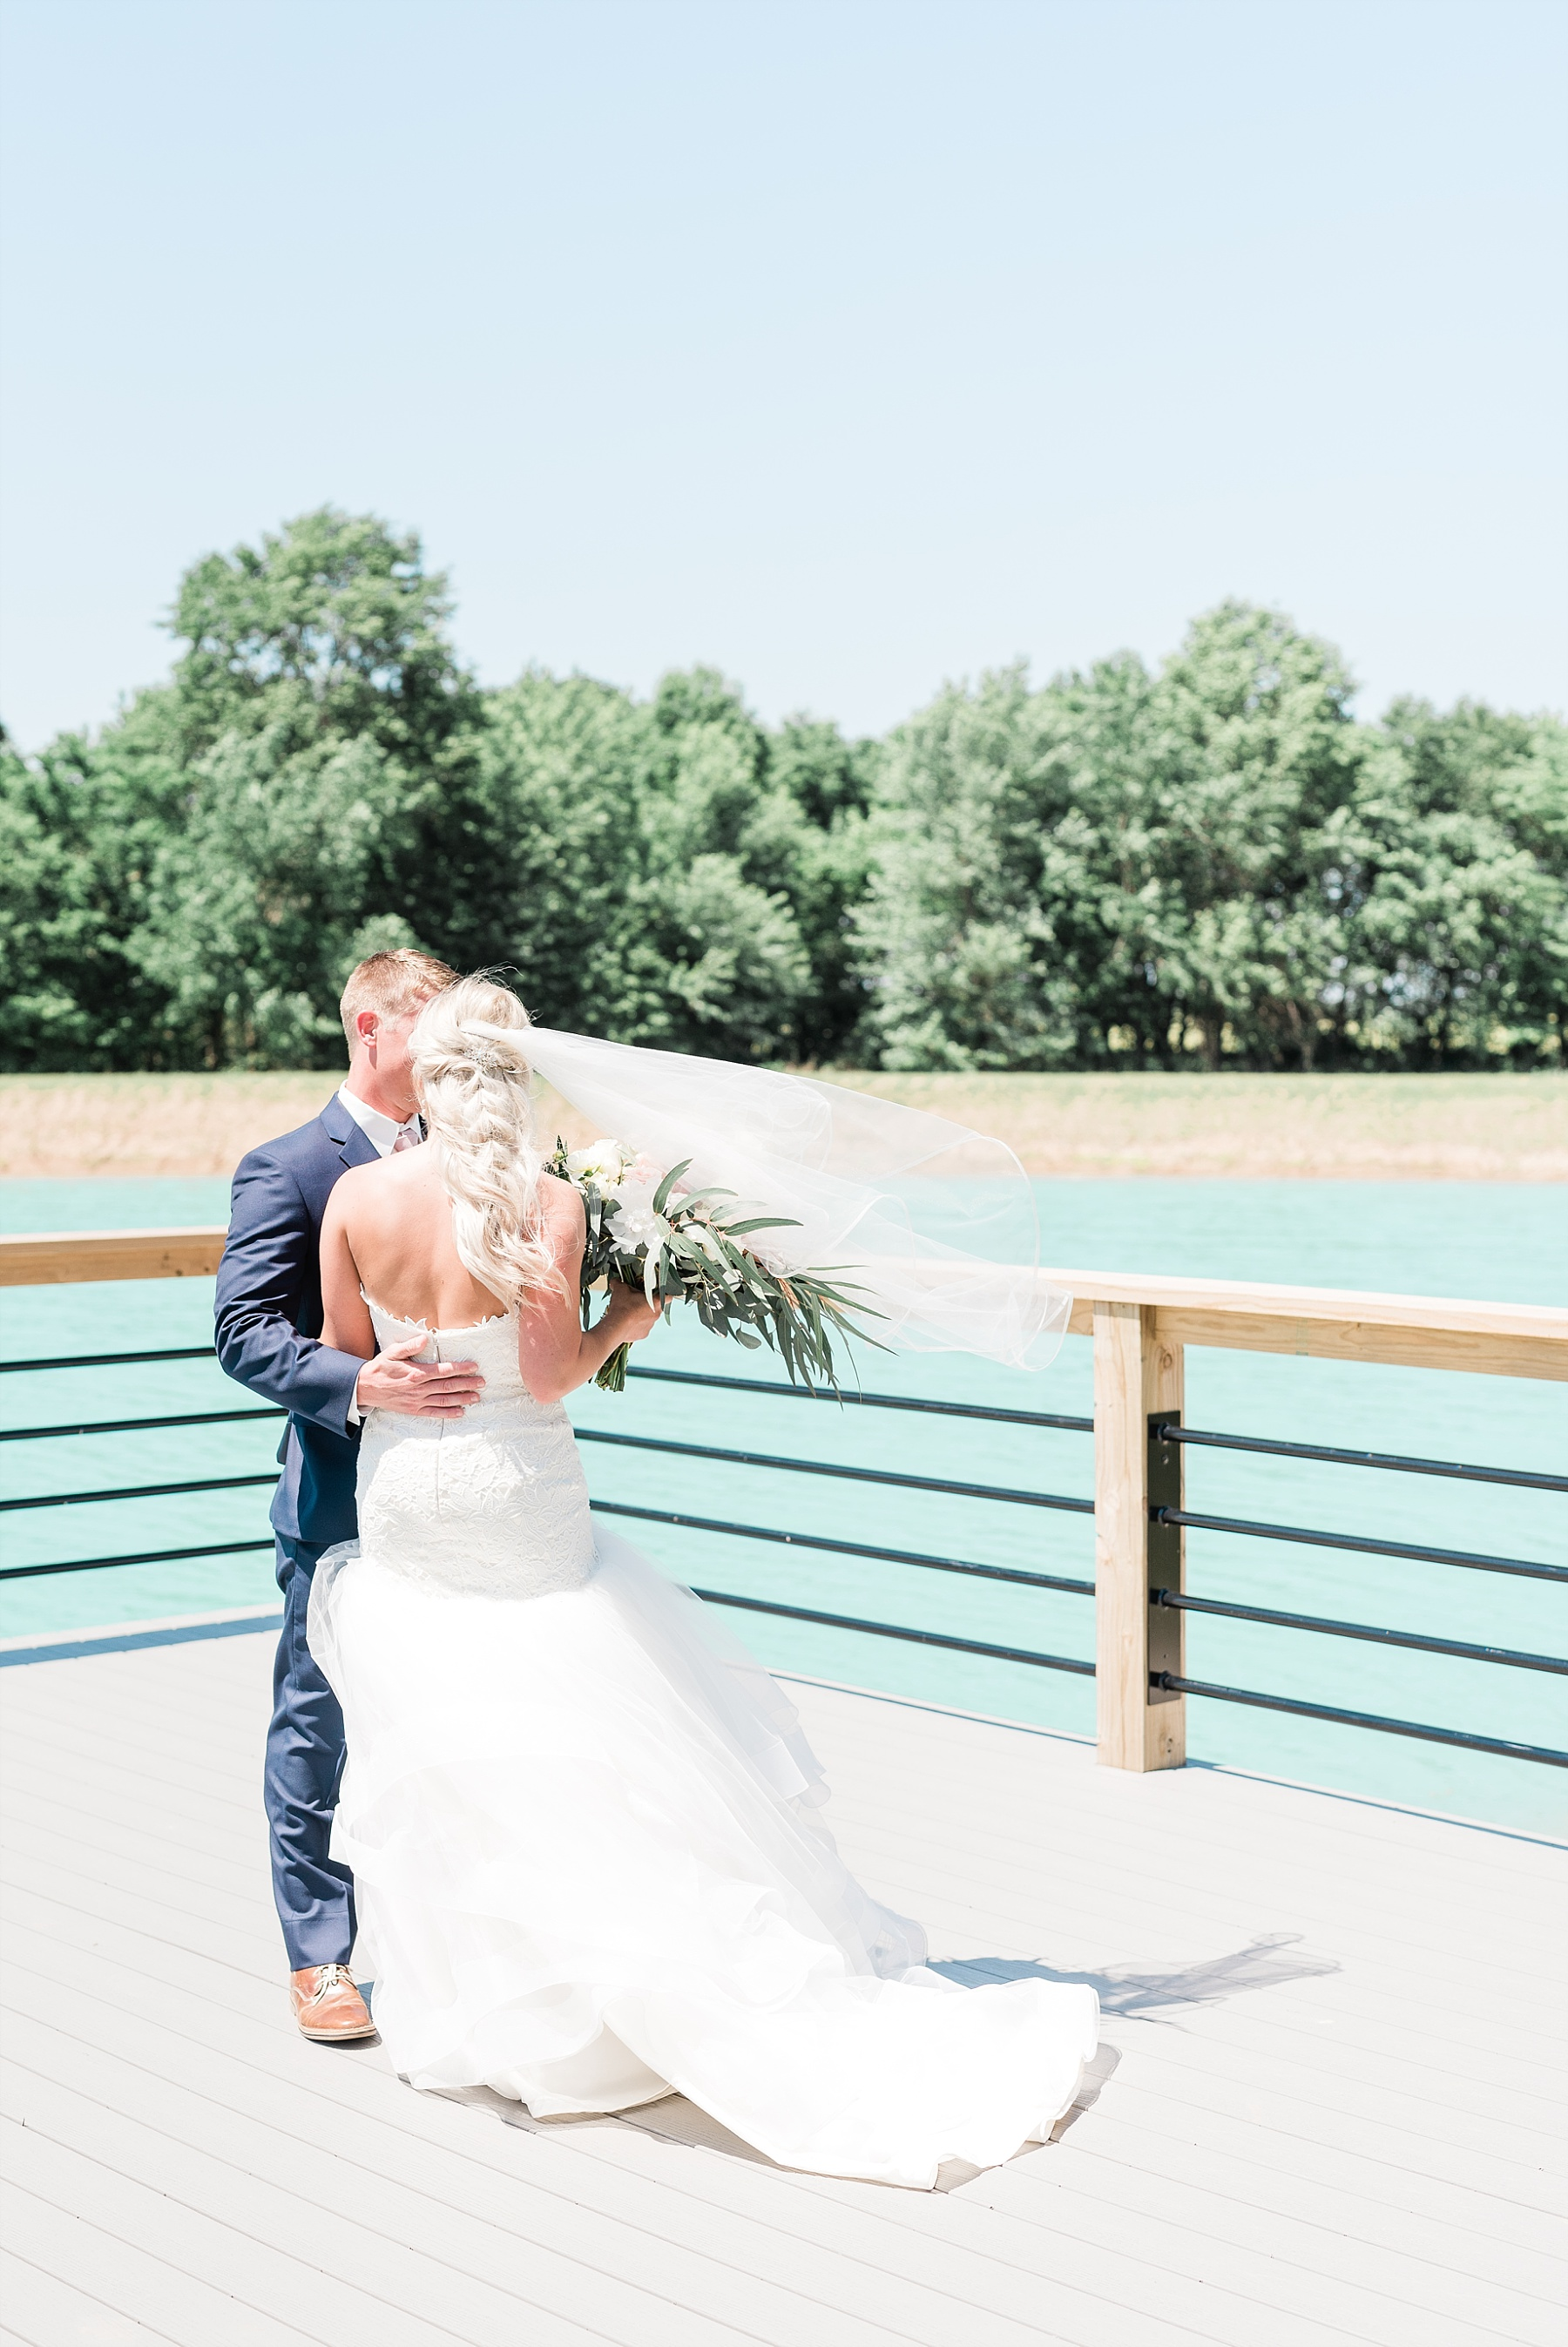 Stunning Heartfelt, Elegant, Fine Art, Chic, Outdoor Spring Wedding with Blush, Cream, Greenery, Rose Gold, and Sequins at Emerson Fields Venue by Kelsi Kliethermes Photography_0017.jpg